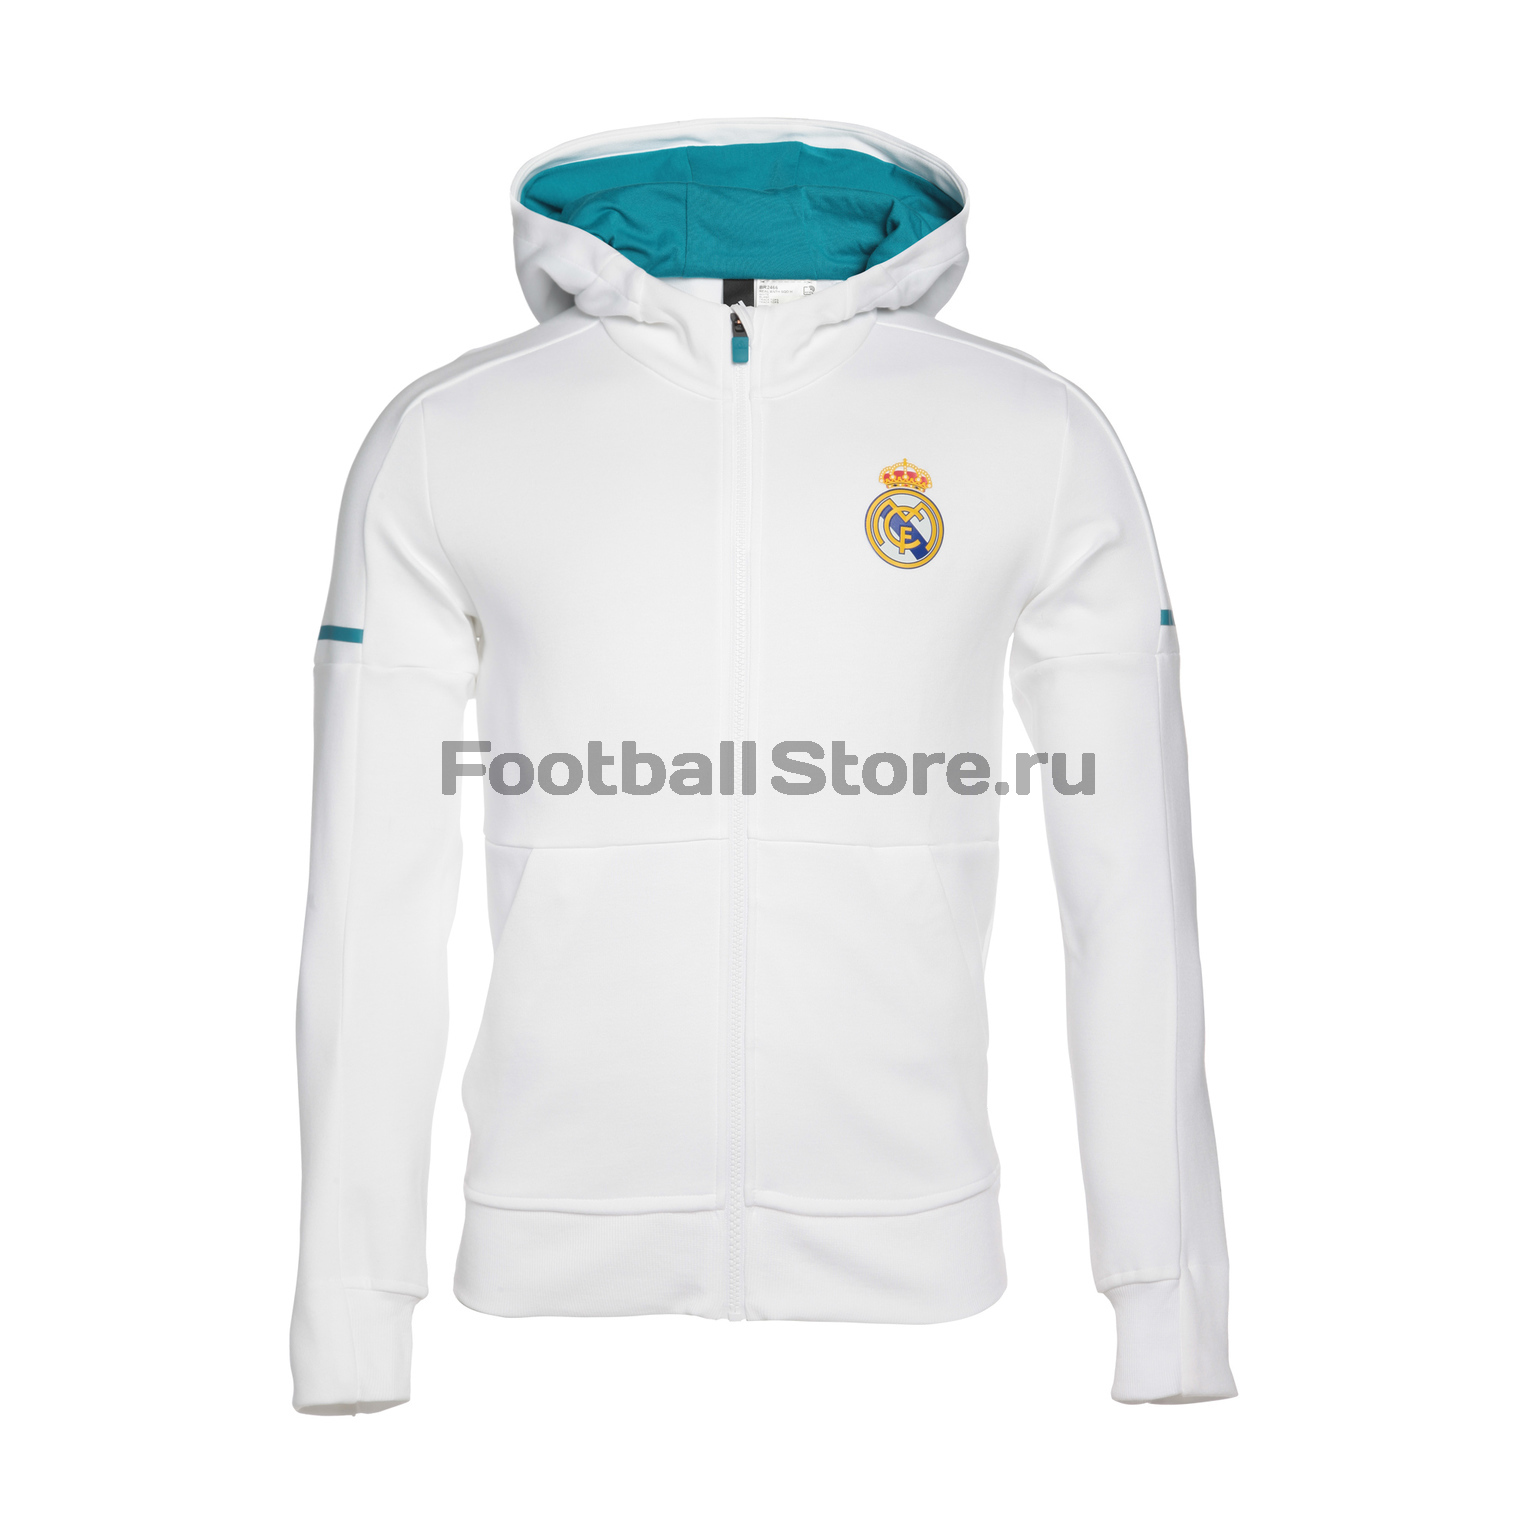 Real Madrid Adidas Толстовка Adidas Real Madrid BR2466 real madrid adidas свитер adidas real madrid euhybrid top bq7851